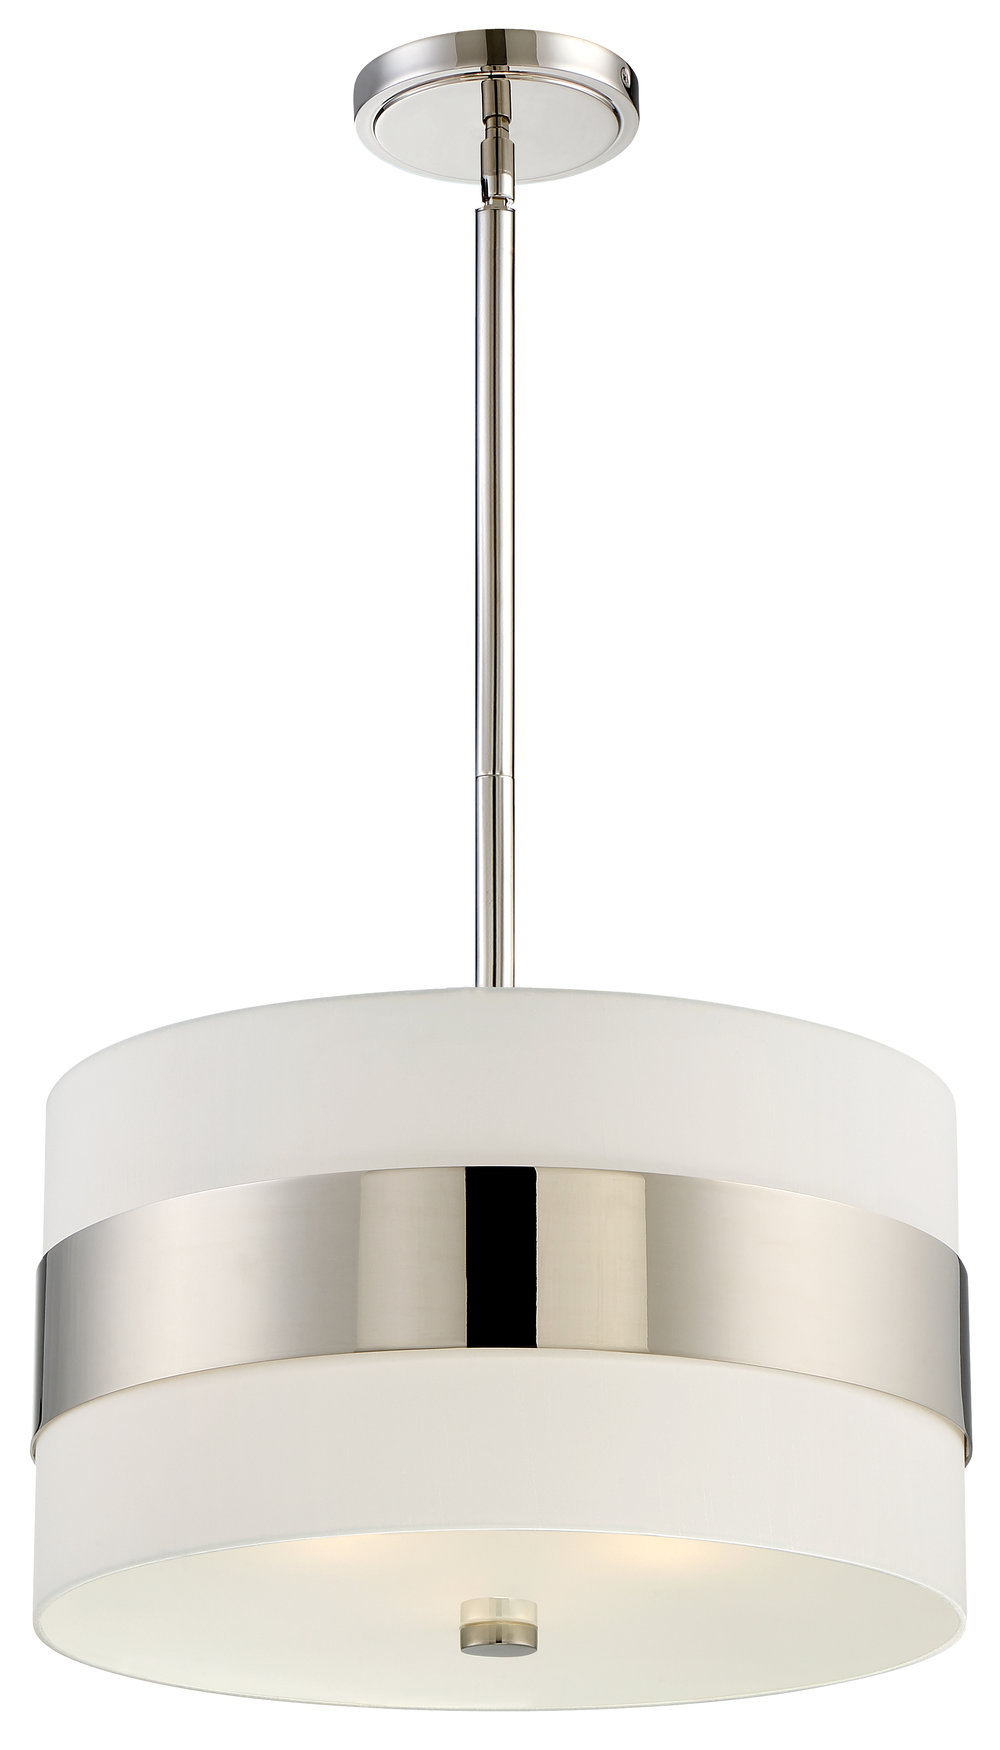 Grayson 3 Light Polished Nickel Chandelier